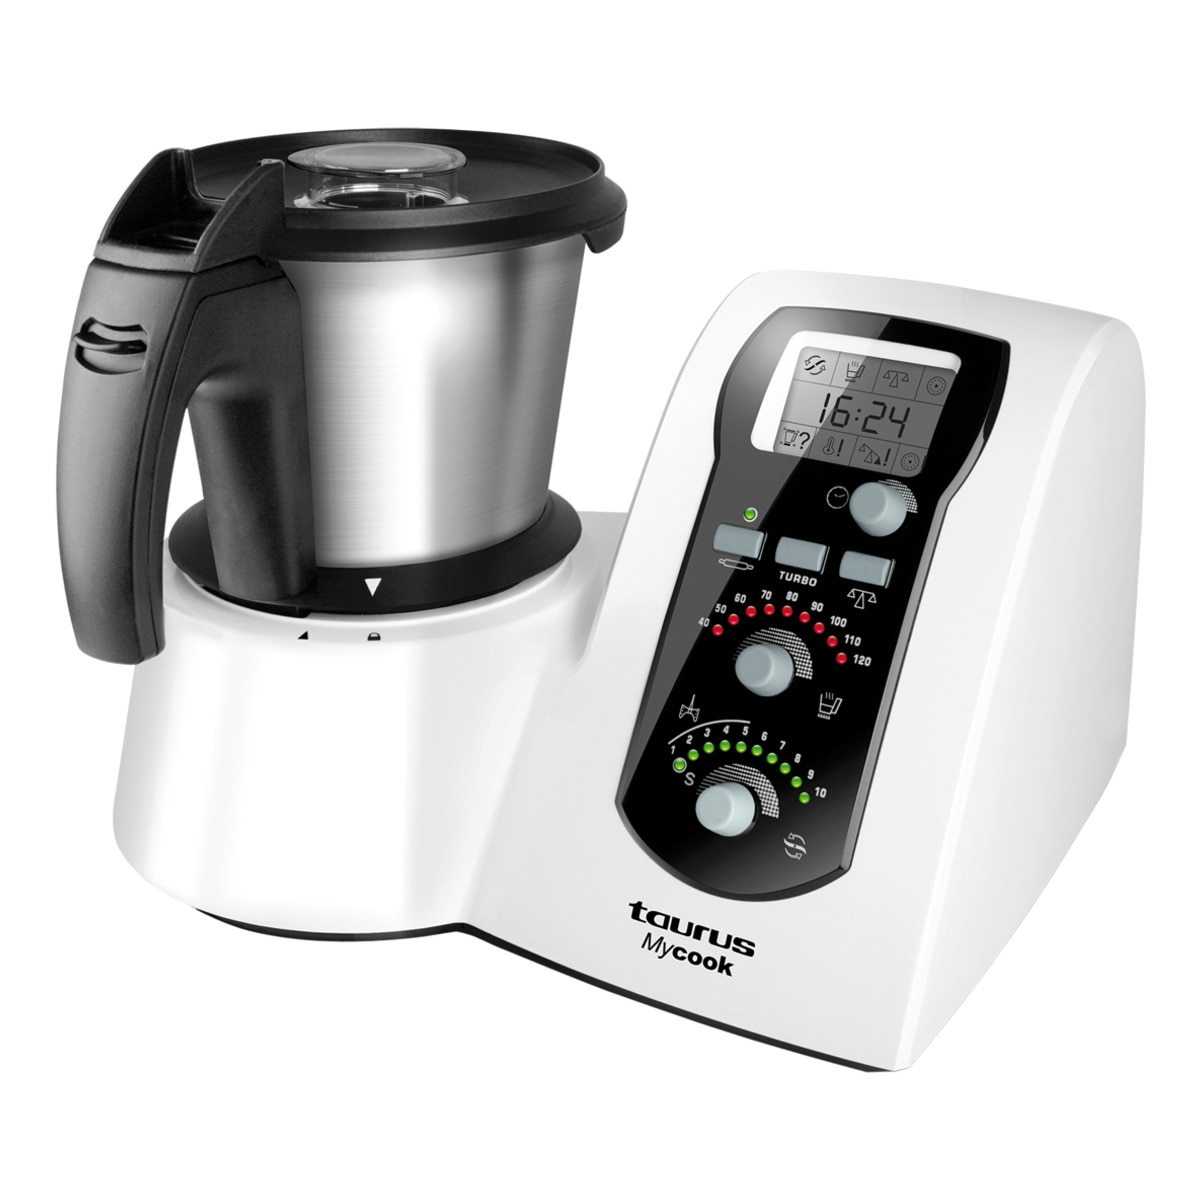 Thermomix Lidl Foro Mycook En Diferentes Versiones